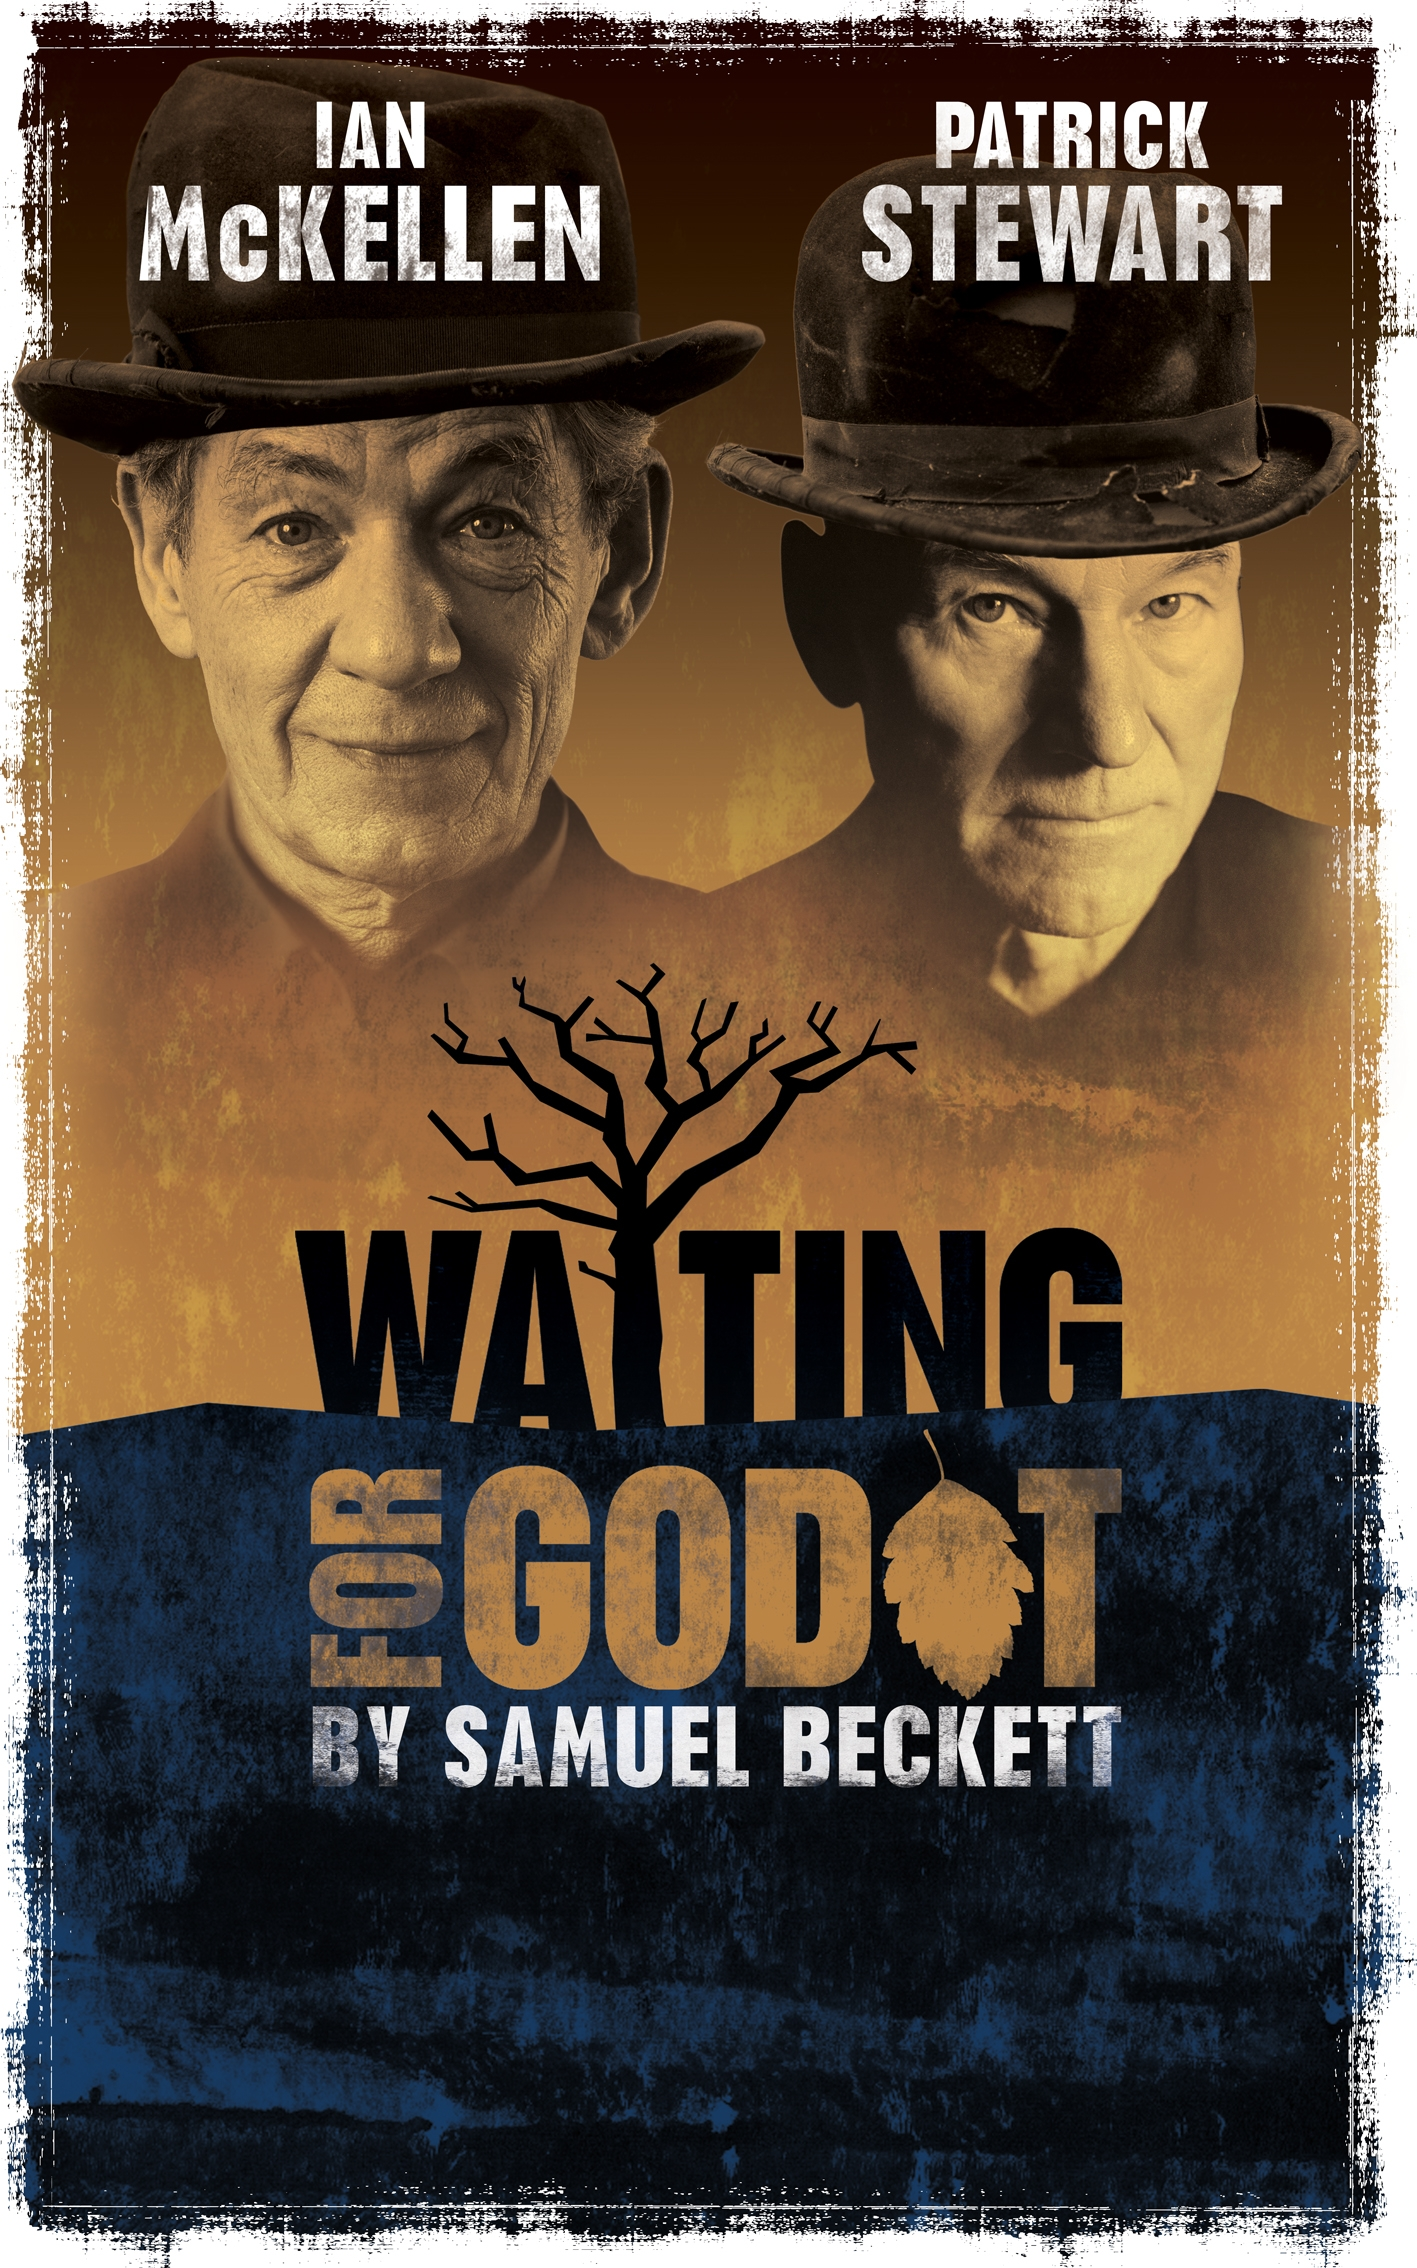 https://yalenusblog.files.wordpress.com/2012/10/waiting-for-godot-image.jpg